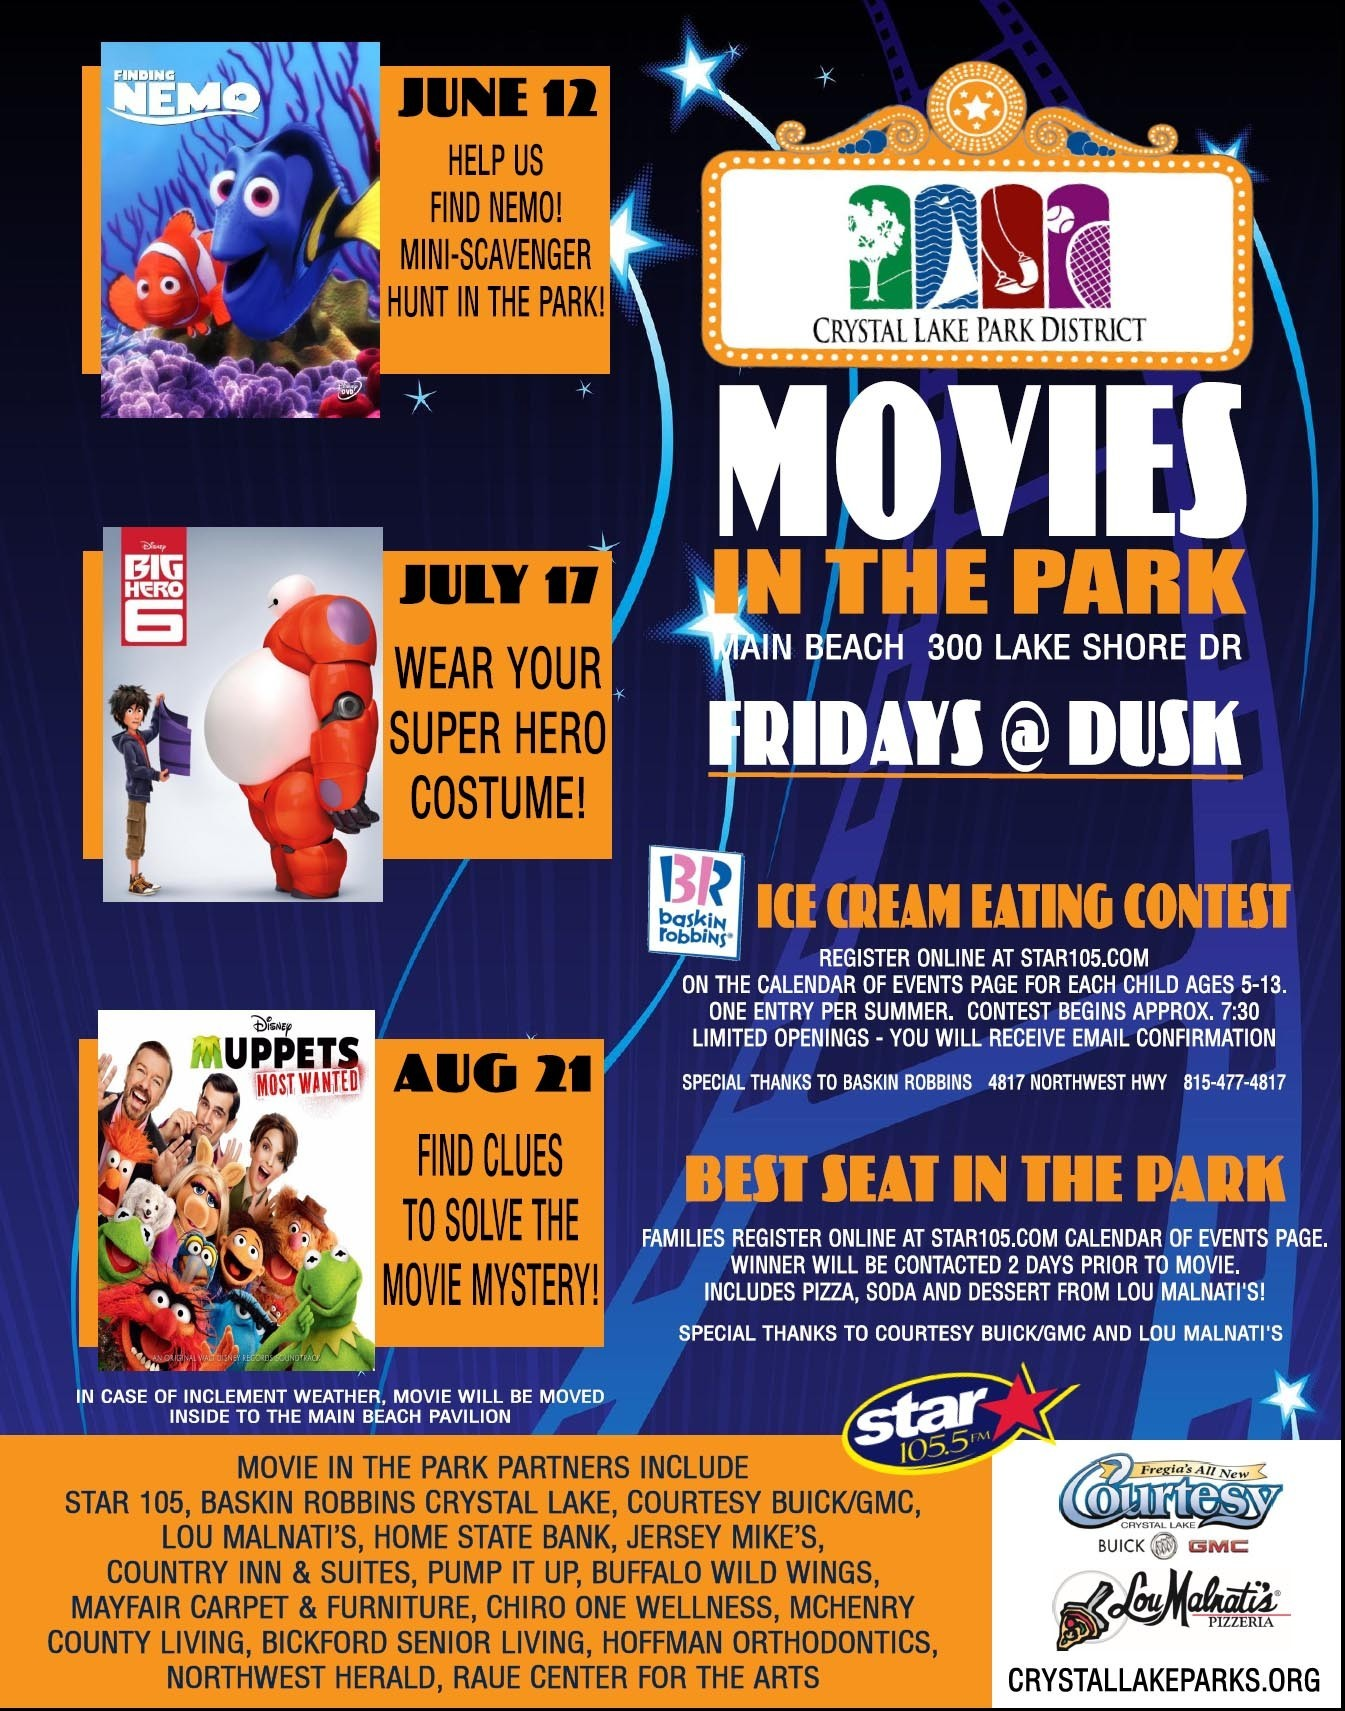 Time To Enter Contests At The Crystal Lake Park District Movies In The Park   Featuring The Movie U0027Finding Nemou0027 On June 12    Elgin Courier News